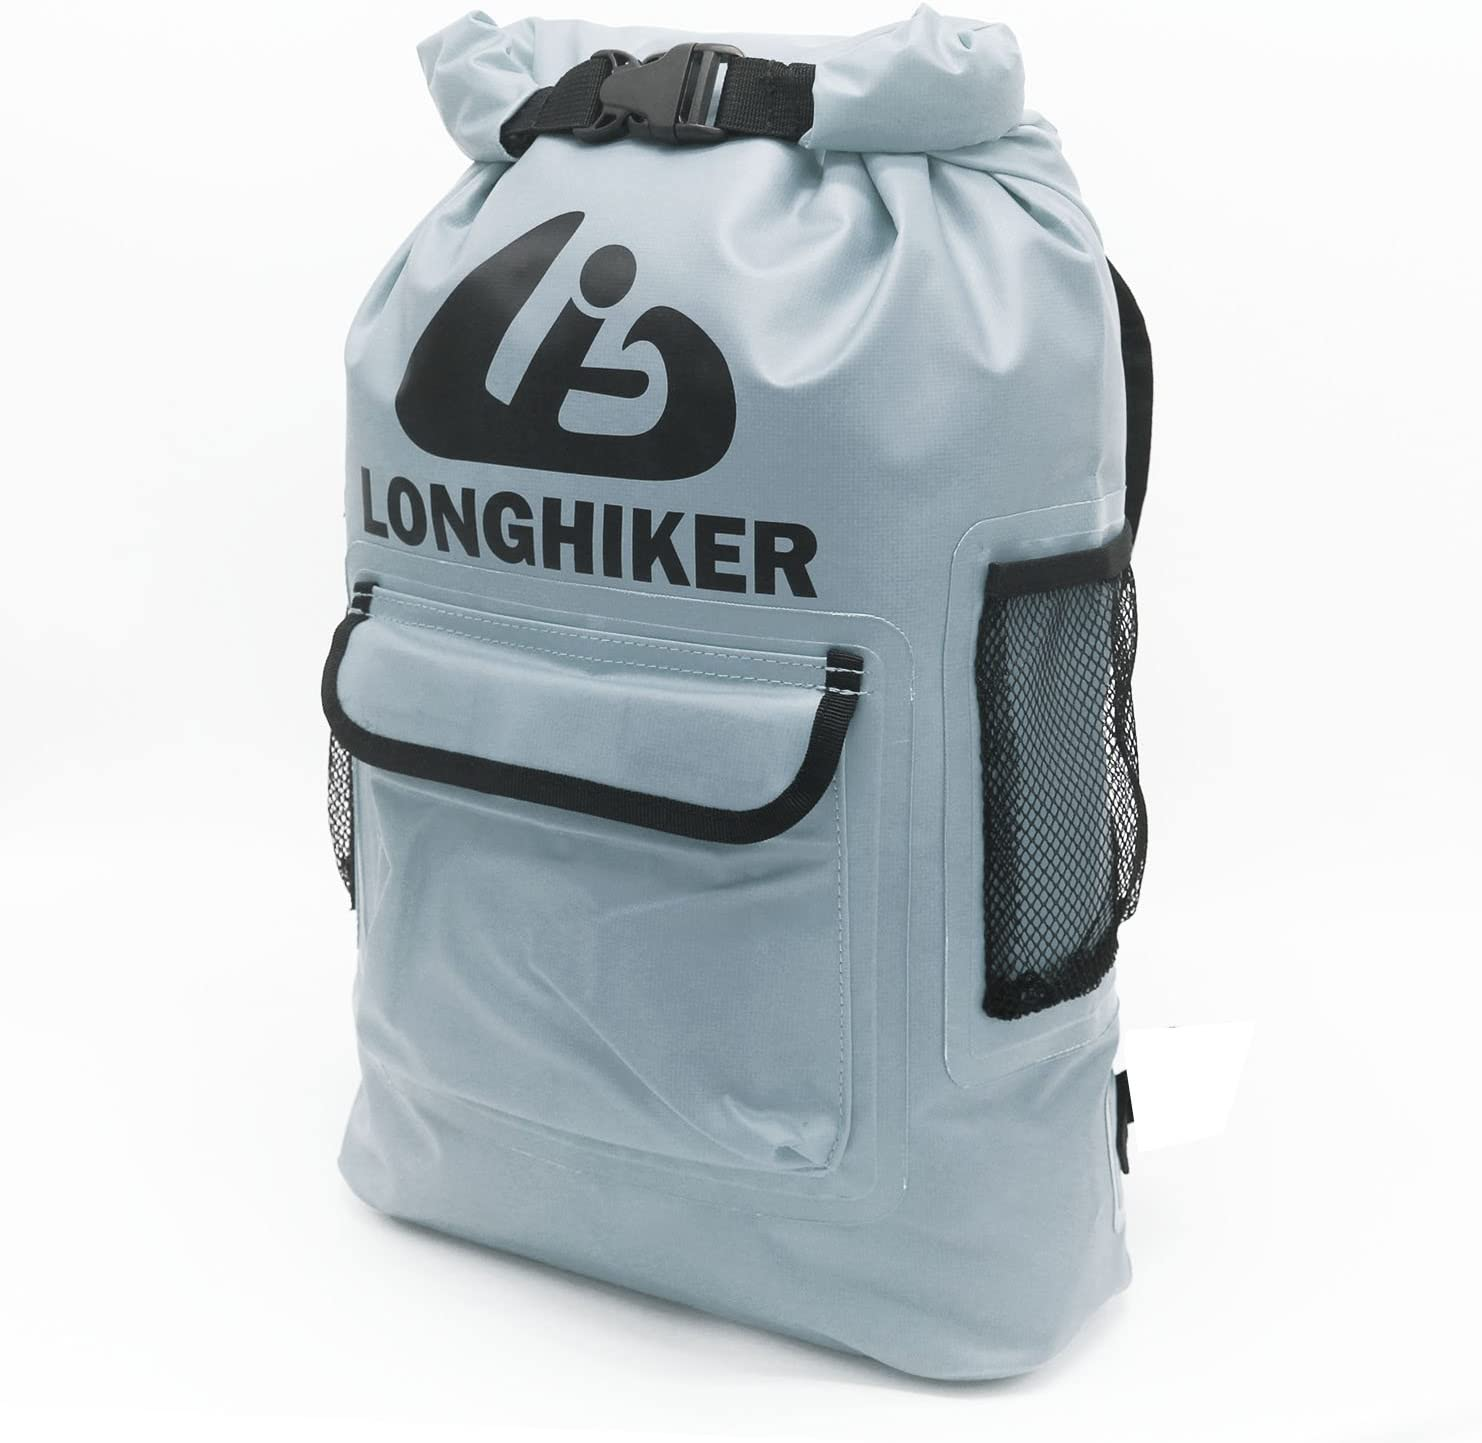 LONGHIKER Waterproof Backpack Dry Bags-Padded Shoulder Straps – Mesh Side Pockets-Easy Access Front Pocket